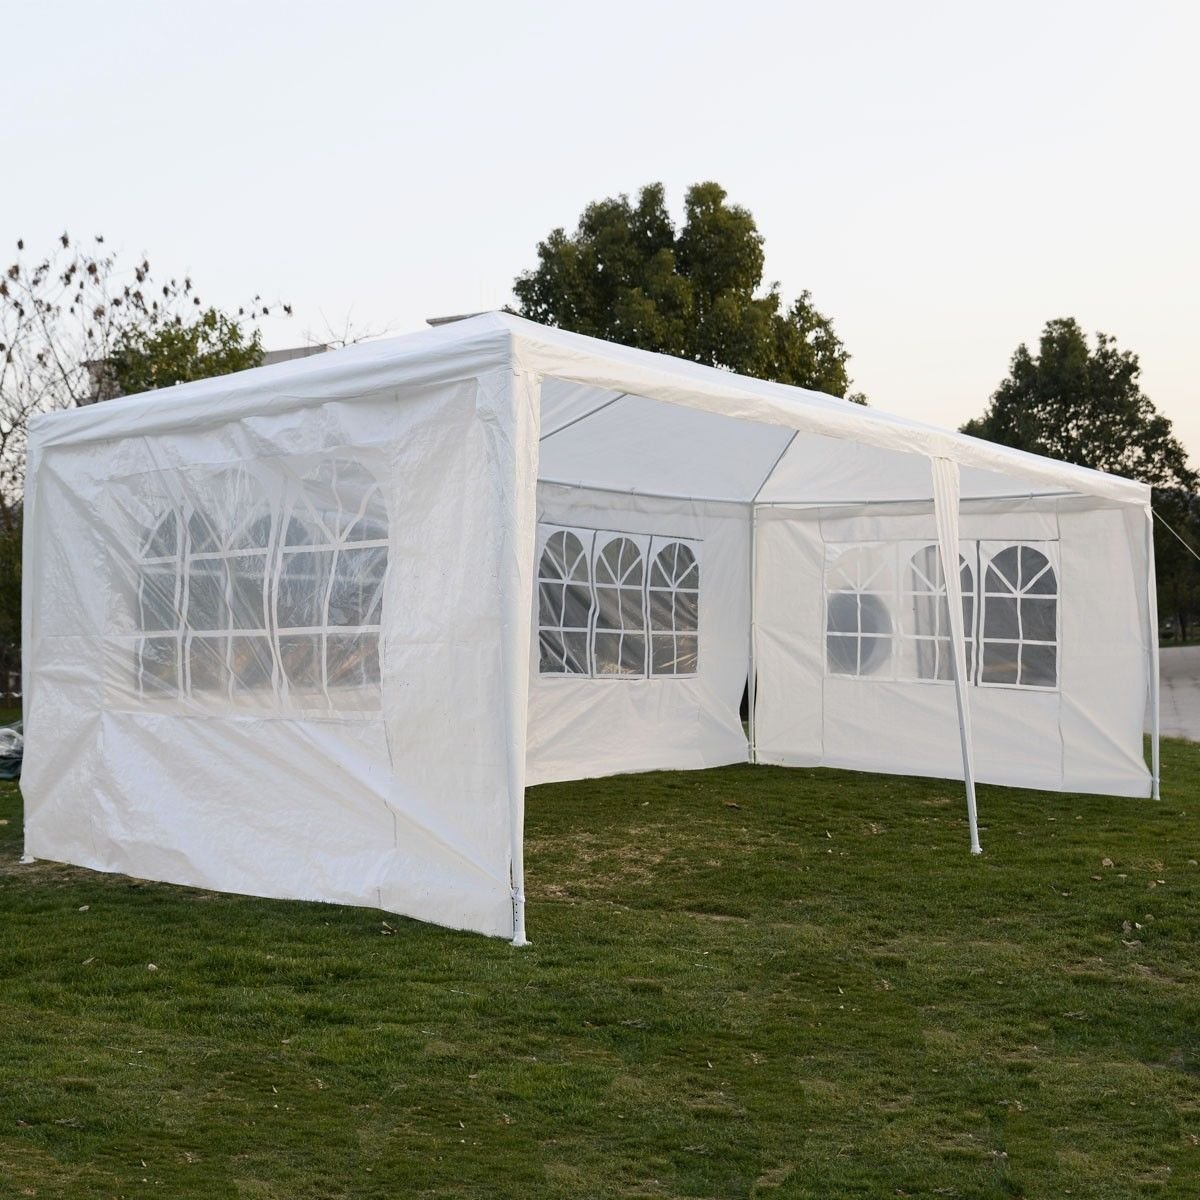 Amazon.com  10u0027x20u0027Canopy Party Wedding Tent Heavy duty Gazebo Pavilion Cater Events  Sports u0026 Outdoors & Amazon.com : 10u0027x20u0027Canopy Party Wedding Tent Heavy duty Gazebo ...